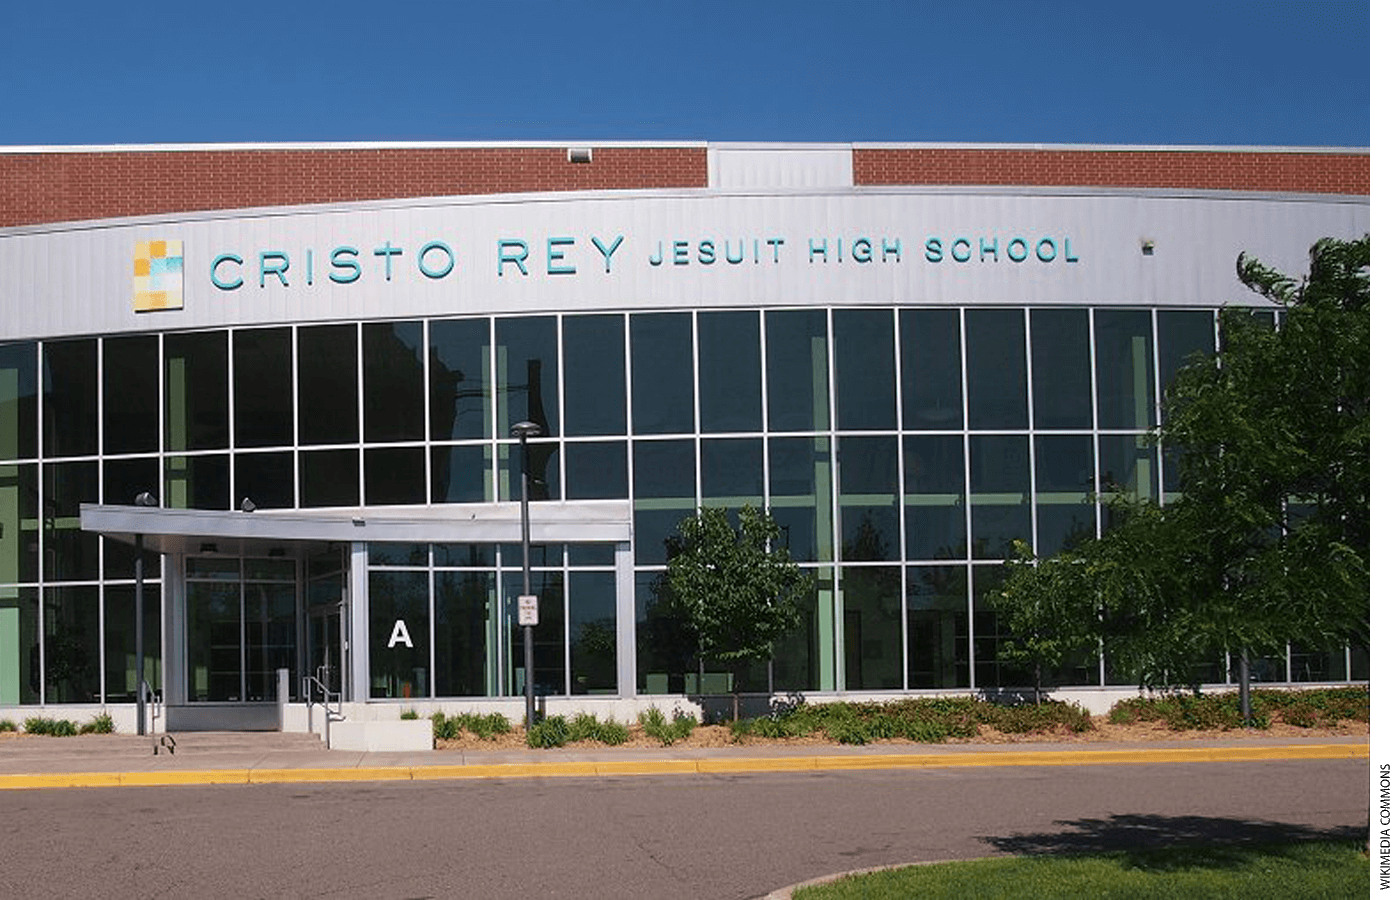 Cristo Rey, founded in 1996, is a network of 37 Catholic schools enrolling 12,000 students in 24 states.